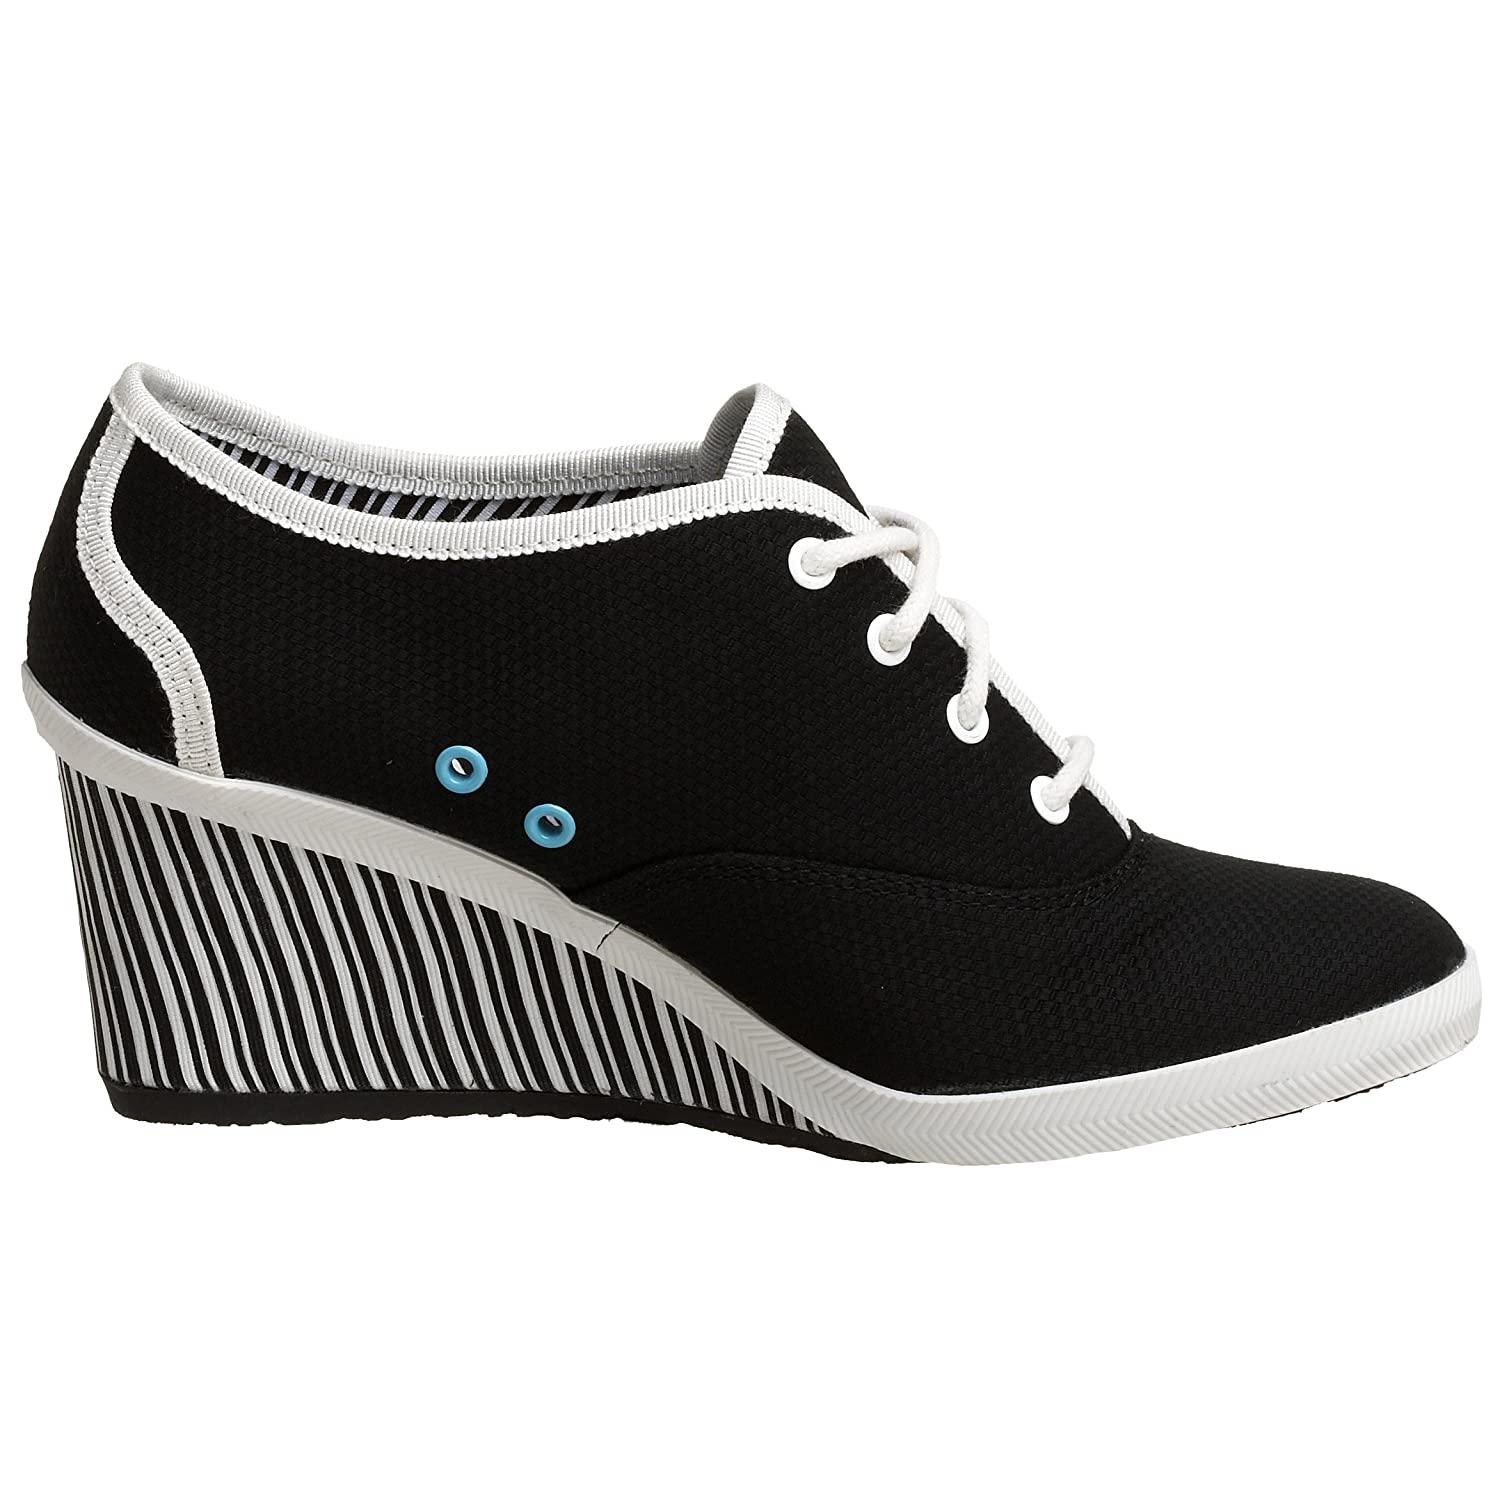 Keds Women's Do-Si-Do Wedge - Free Overnight Shipping & Return Shipping: Endless.com